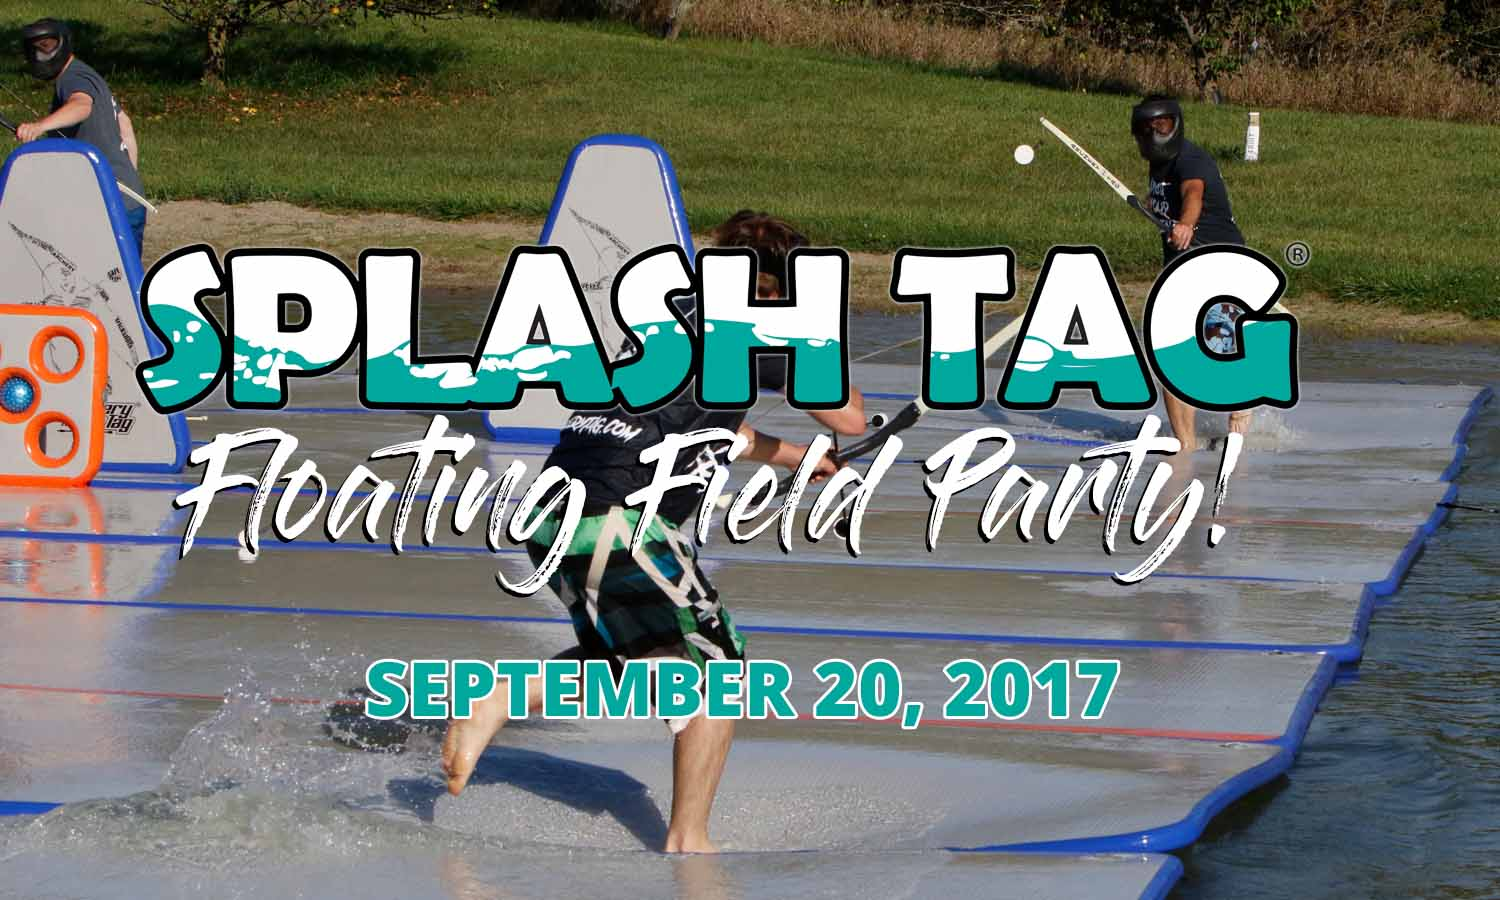 Splash Tag® Floating Field Party!